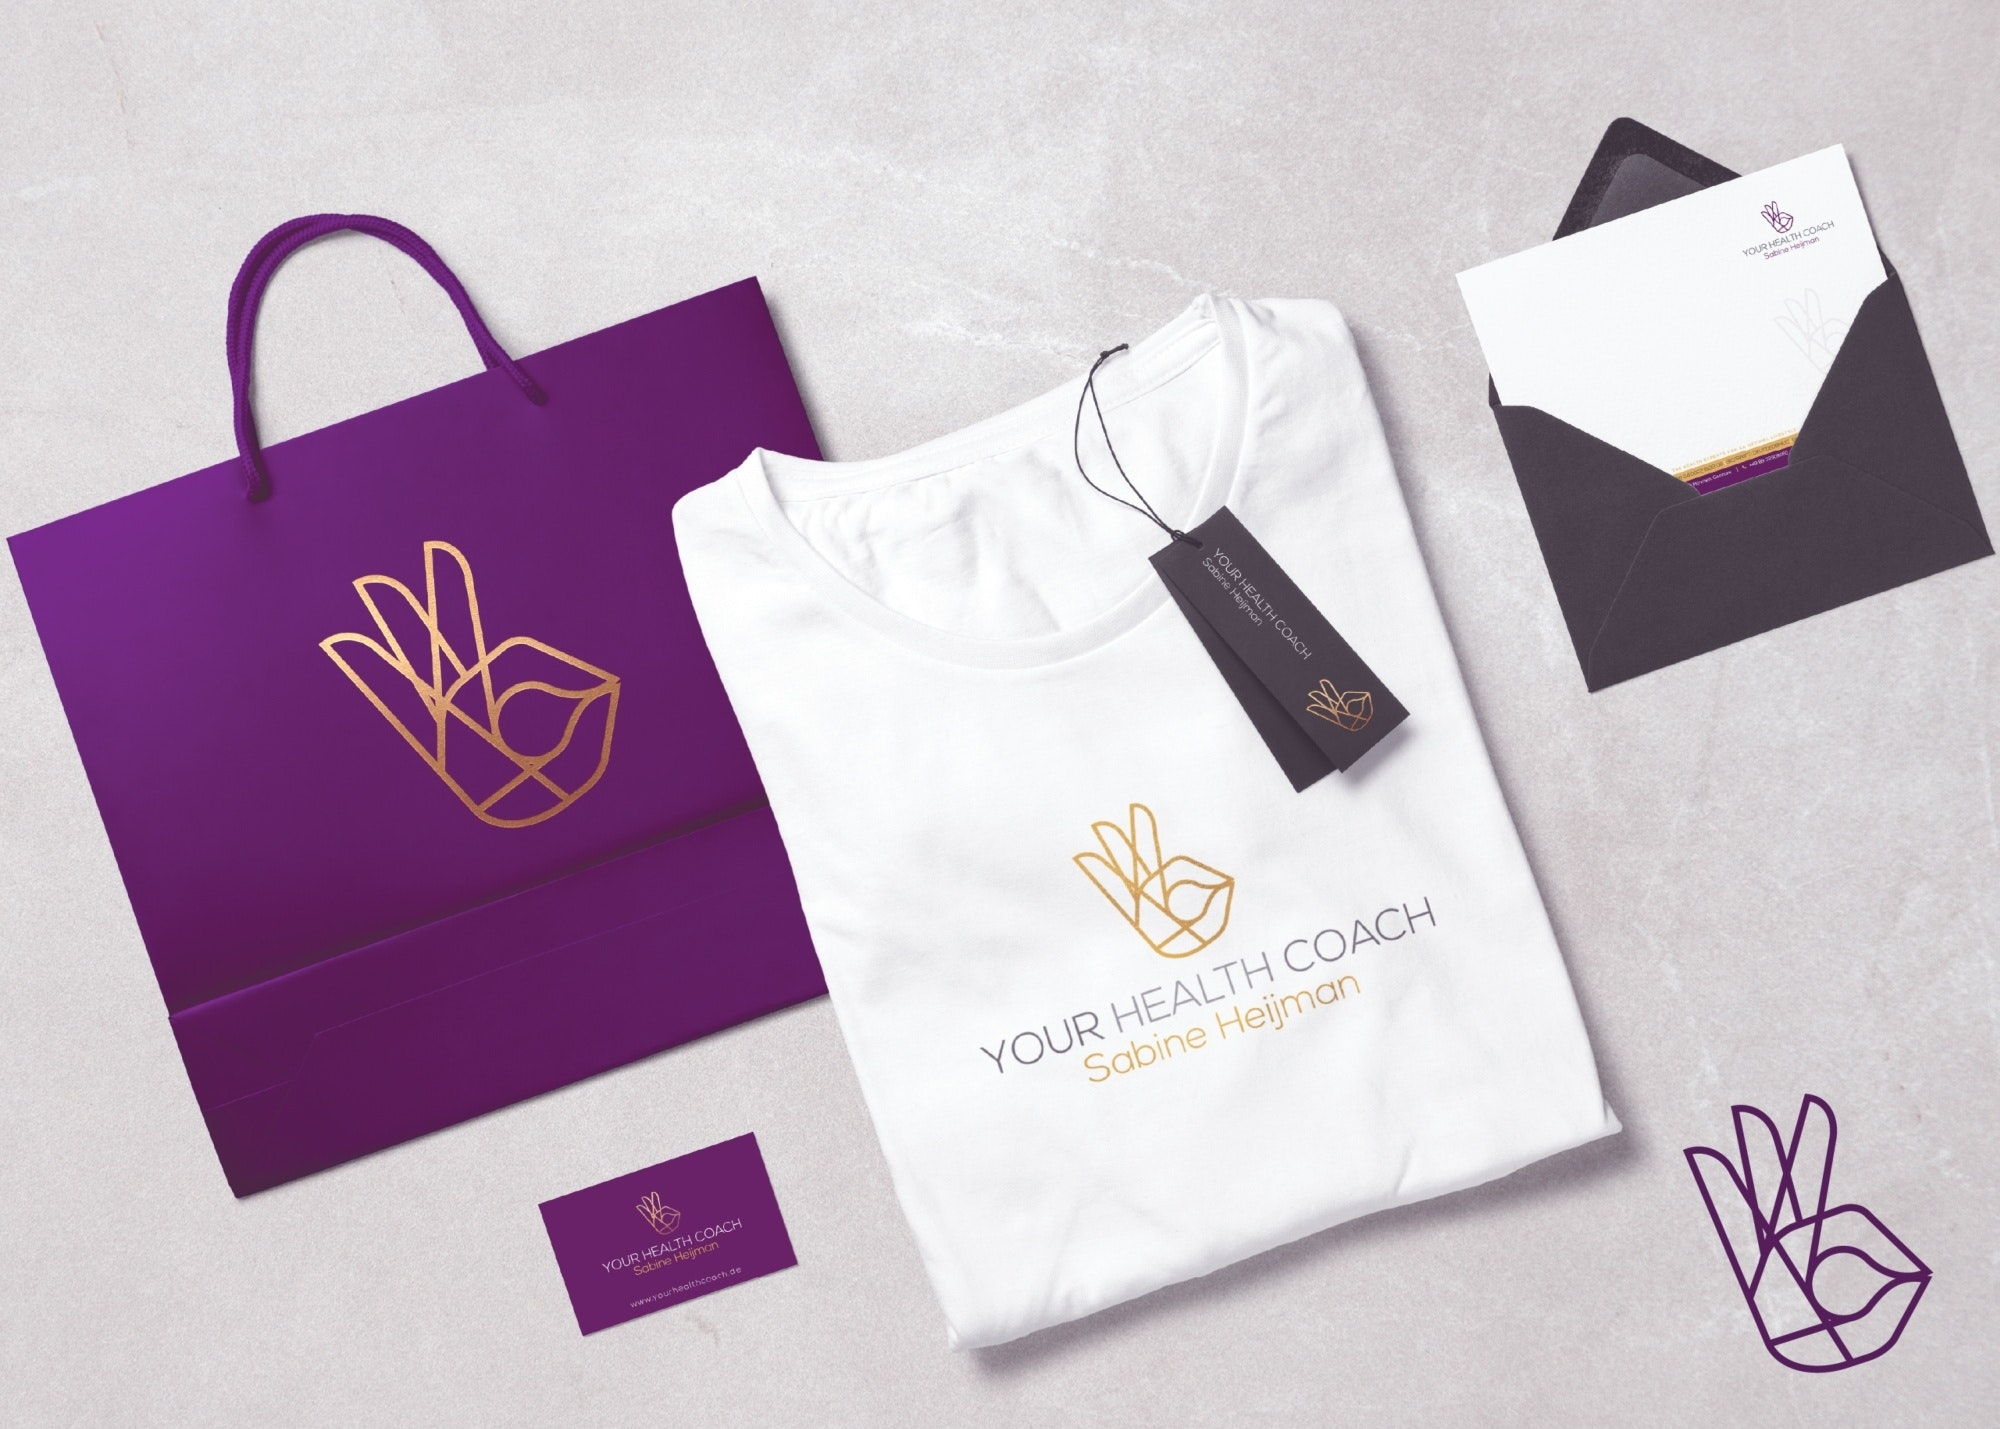 Your Health Coach Sabine Heijman branding package